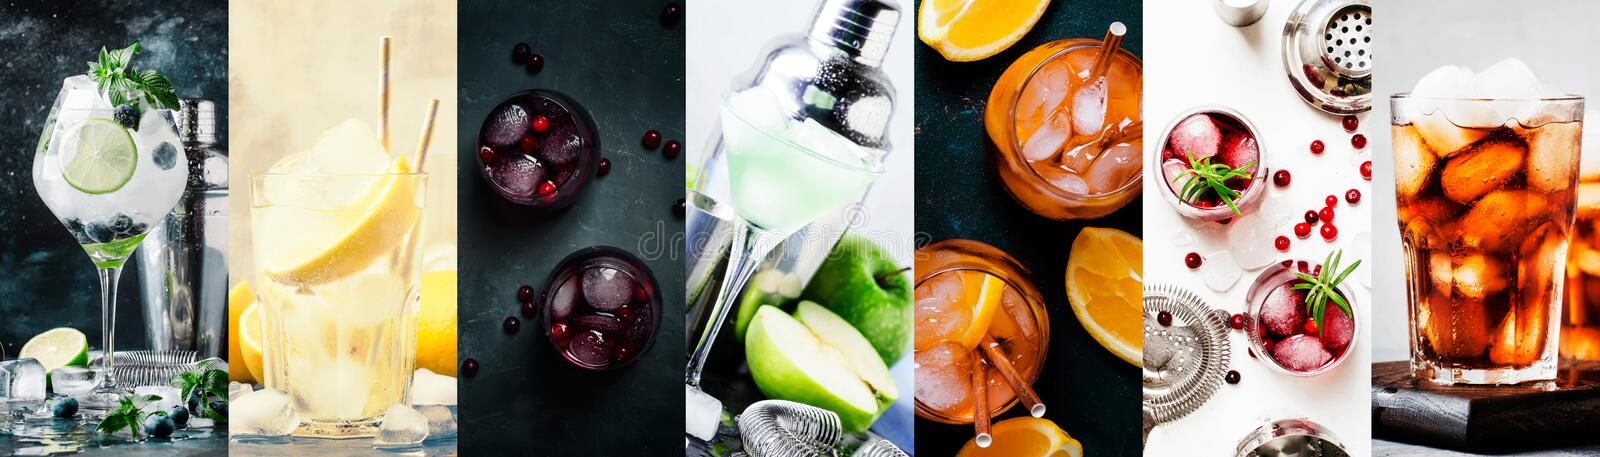 Alcoholic cocktails with strong drinks, soda, berries and fruit in assortment. Close-up. Photo collage stock photo